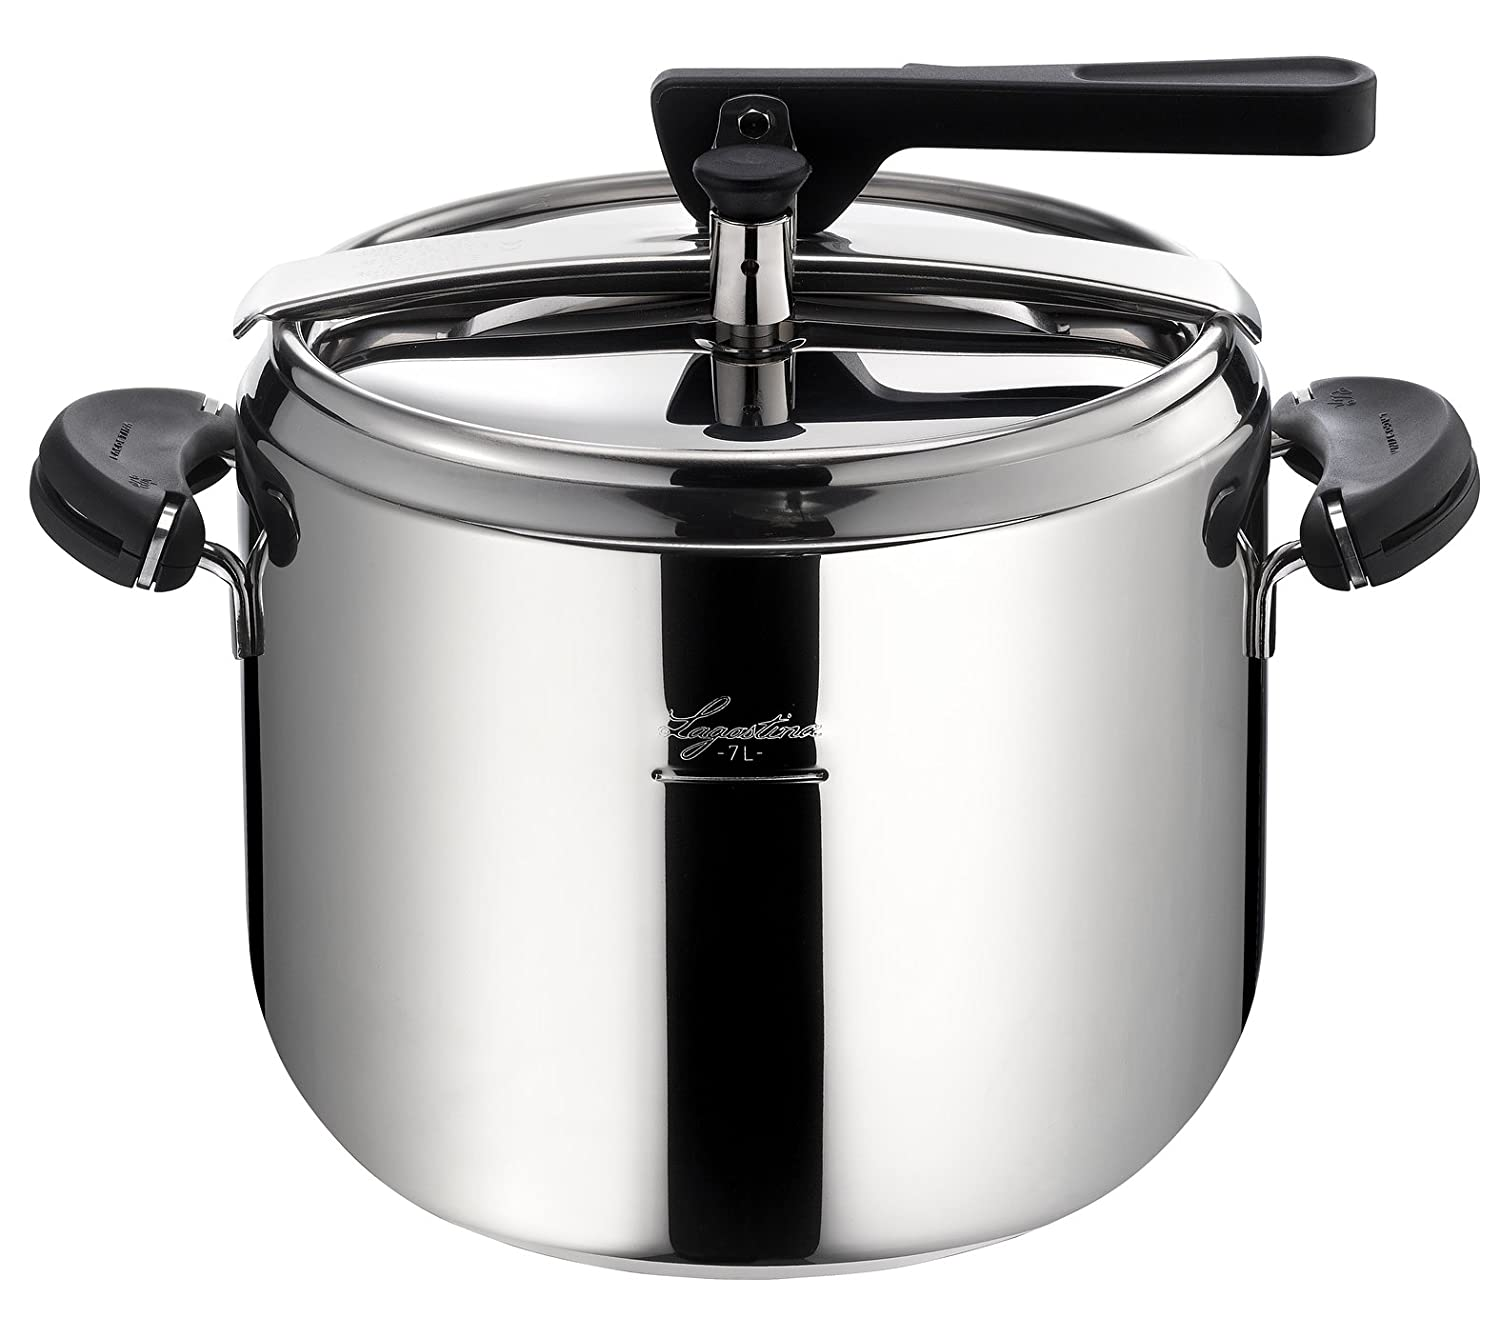 Lagostina Gaia 7L Pressure Cooker with Basket and Recipe Book Included:  Amazon.ca: Home & Kitchen